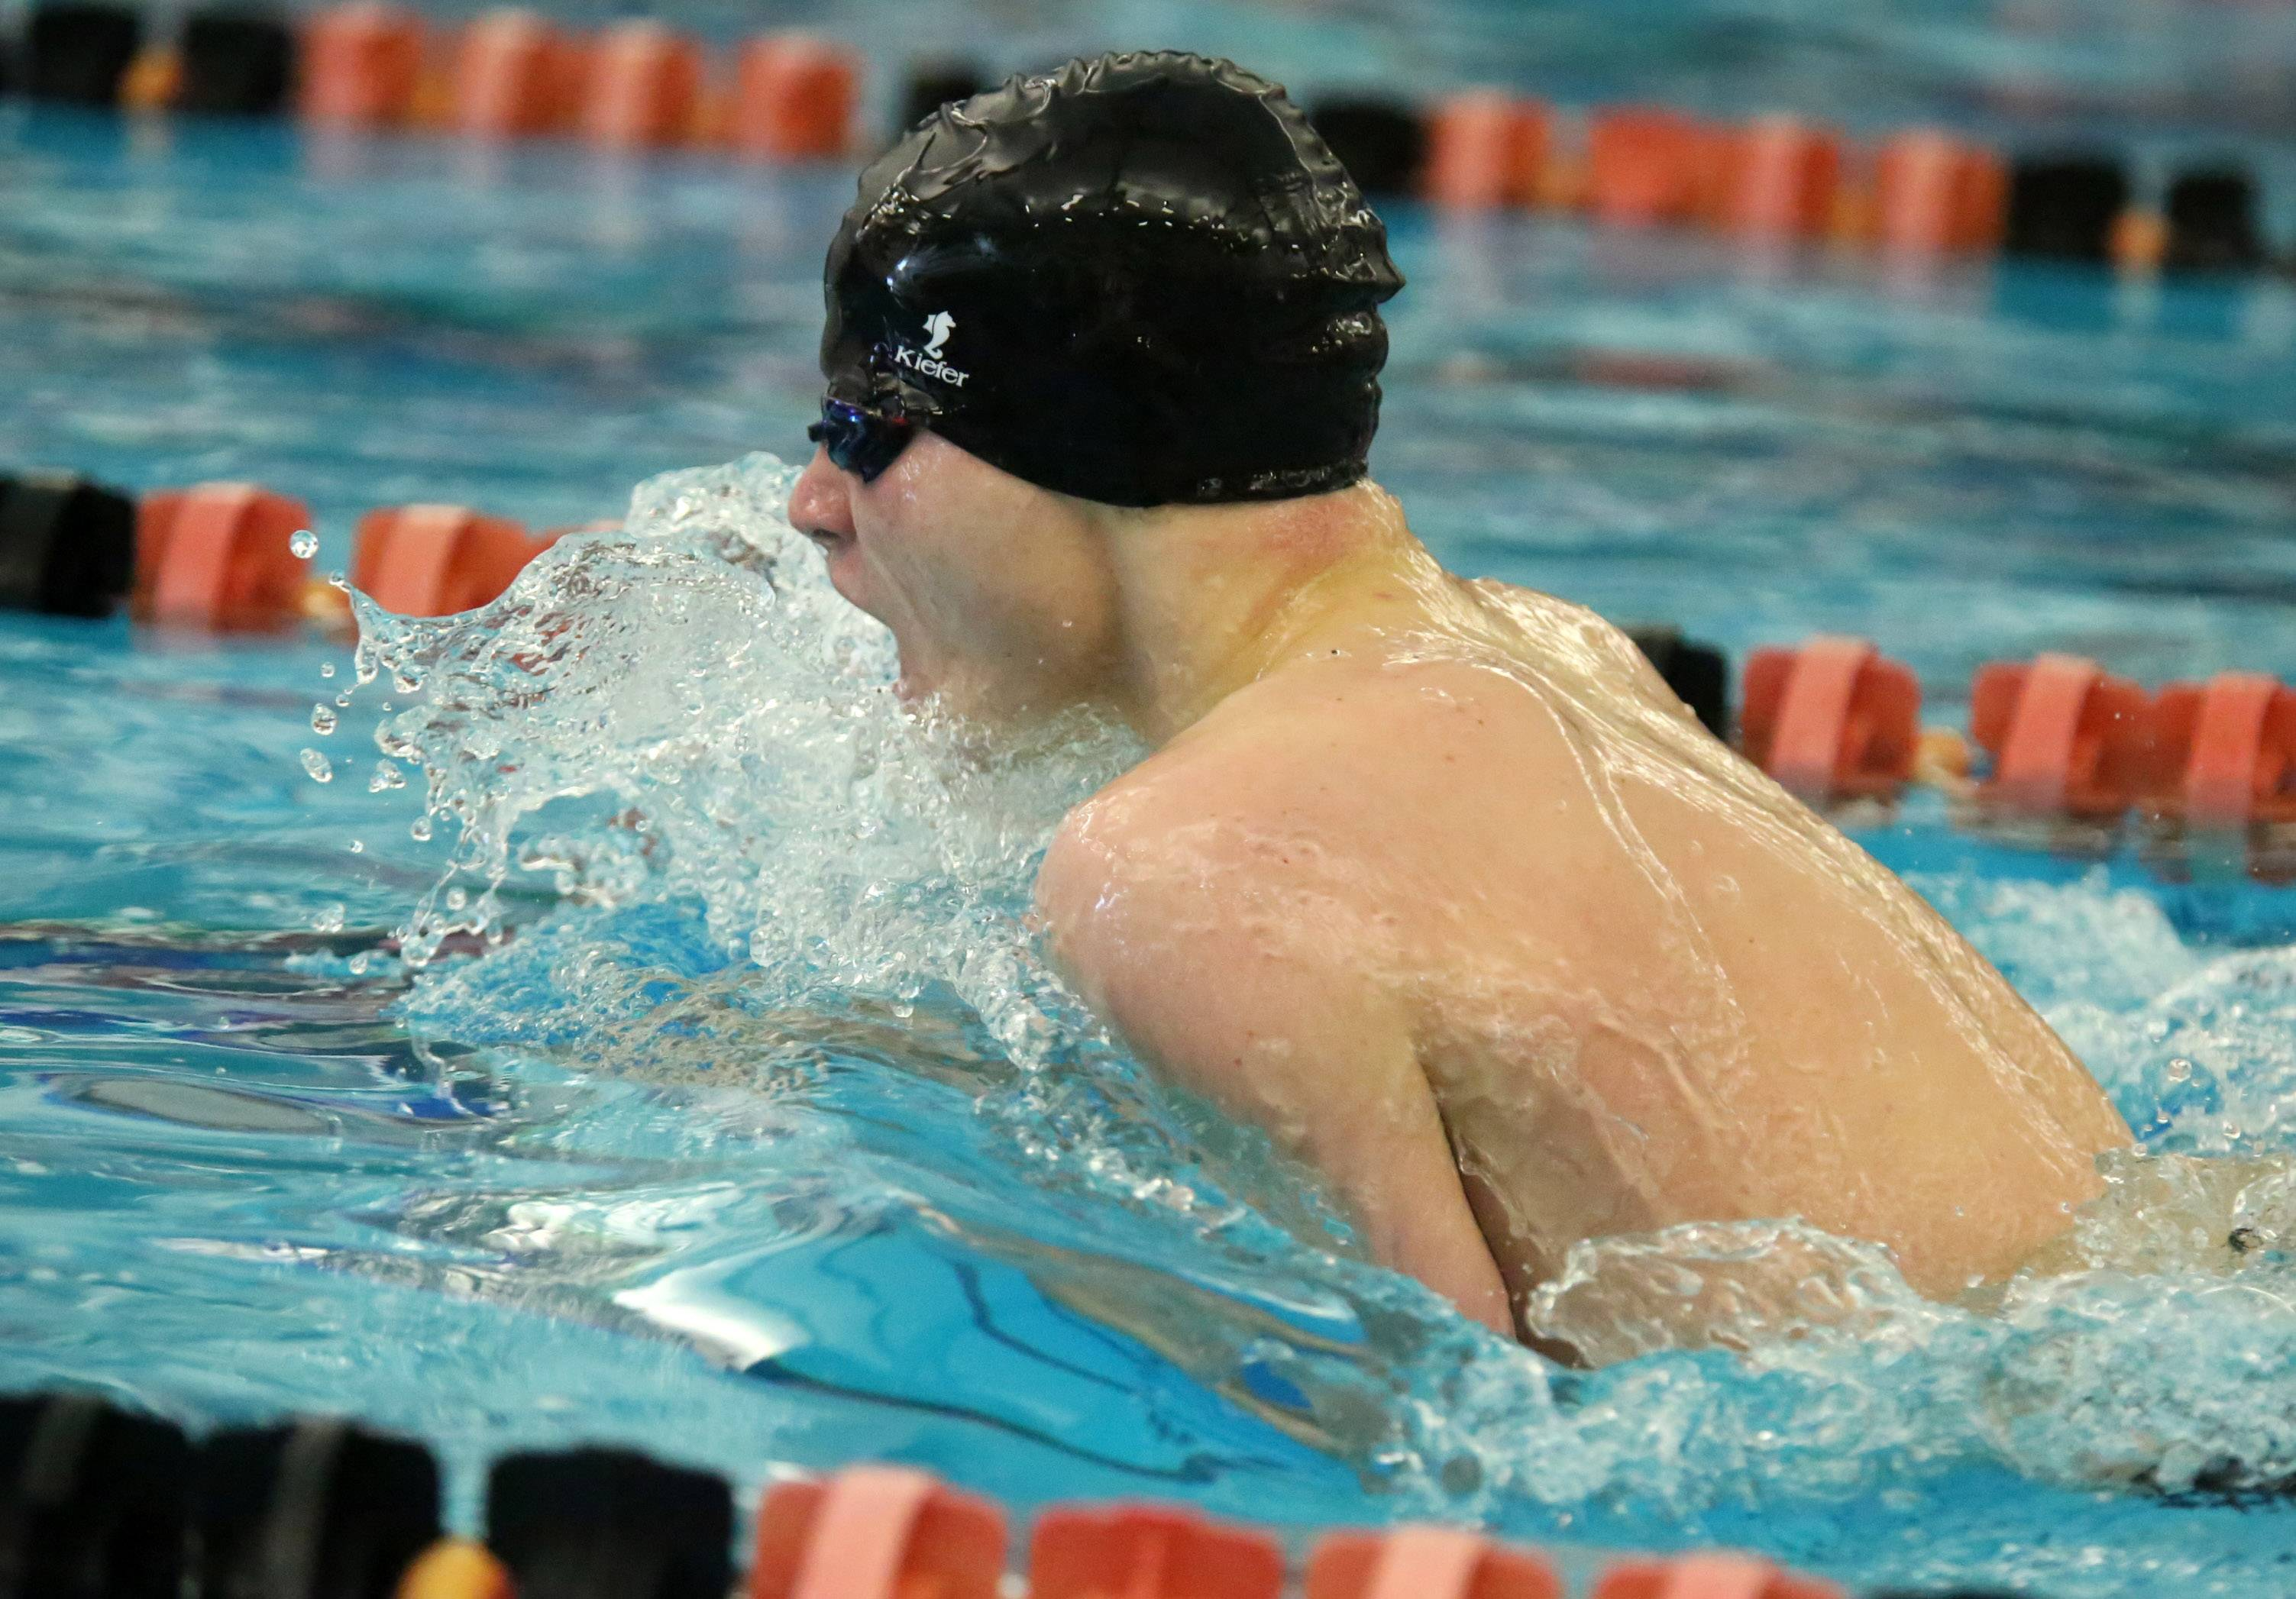 Wheeling's Jake Noel places first in the 200-yard individual medley in the Mid-Suburban League meet Saturday at Barrington.